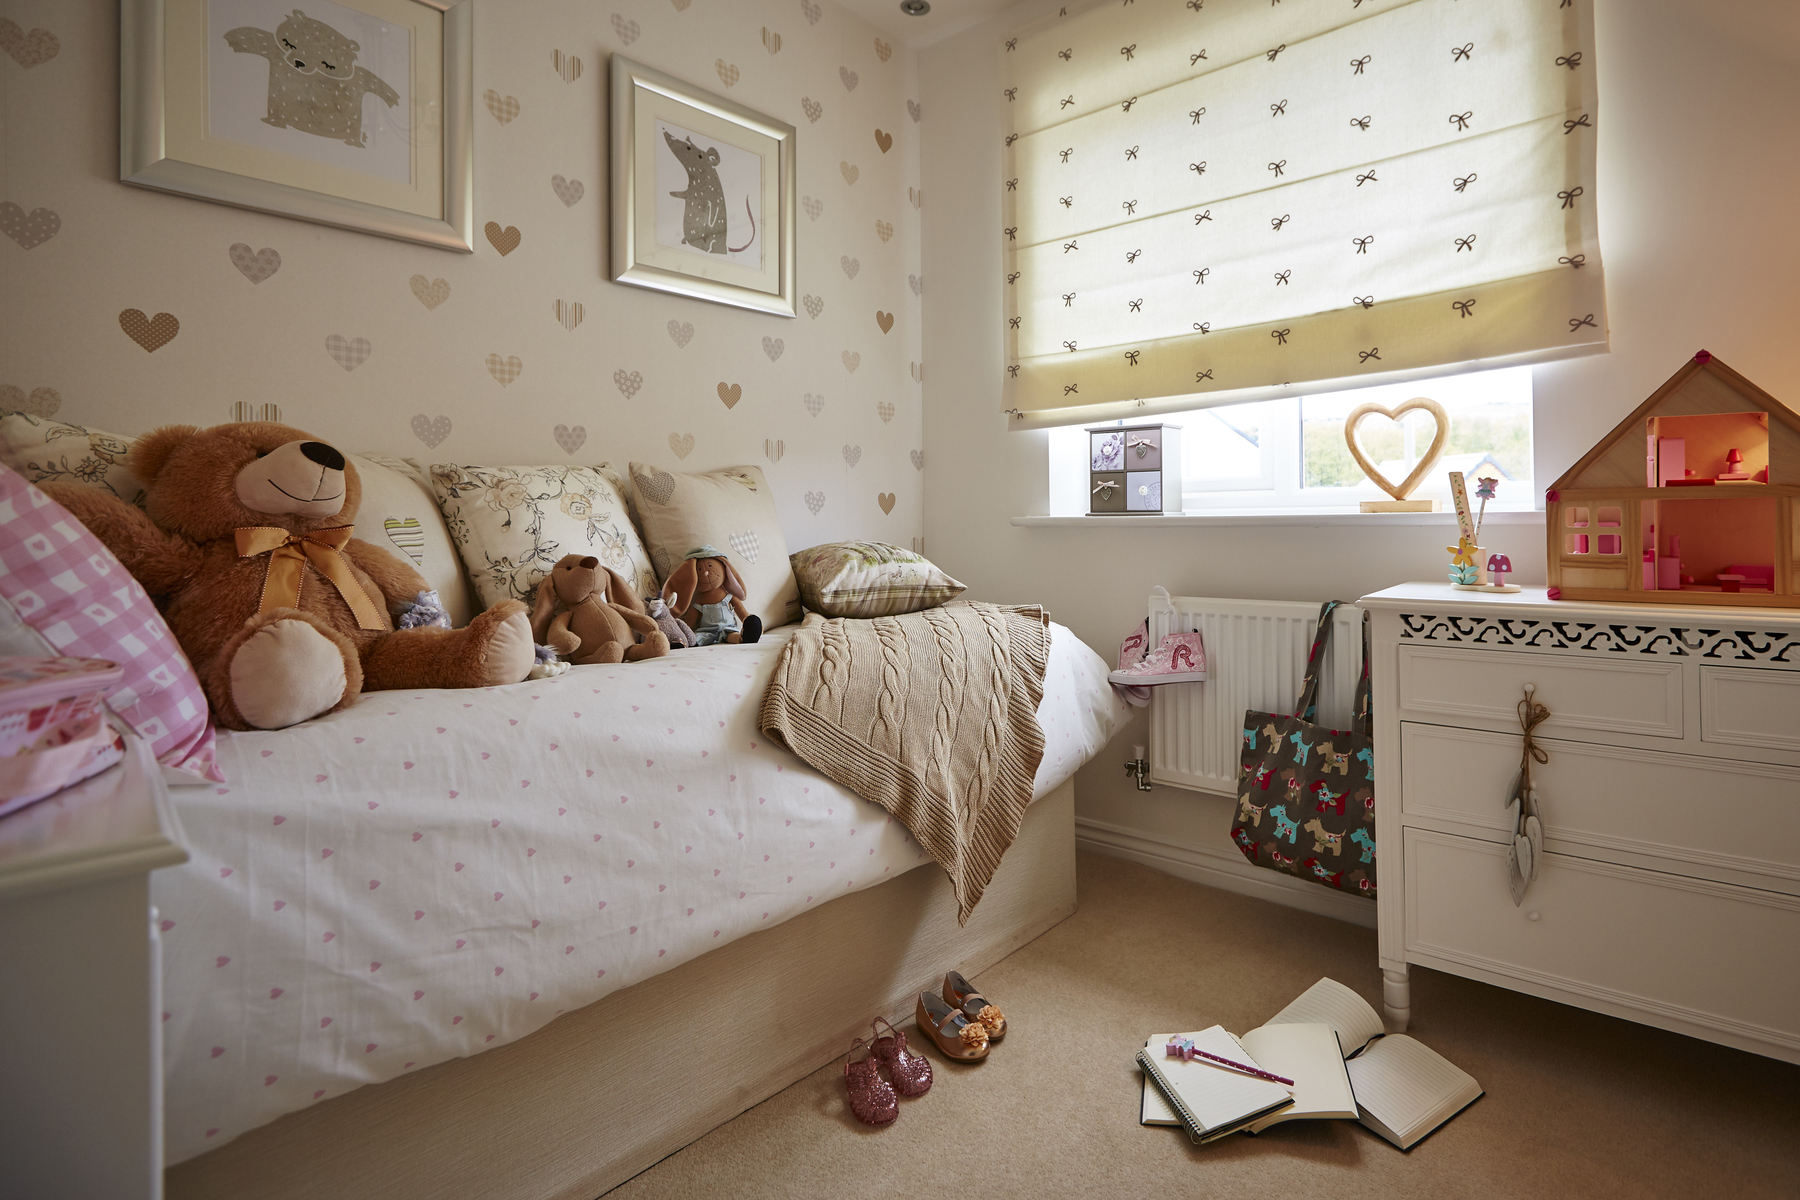 twswales__kingsmead_caerphilly_pa44_midford_bedroom